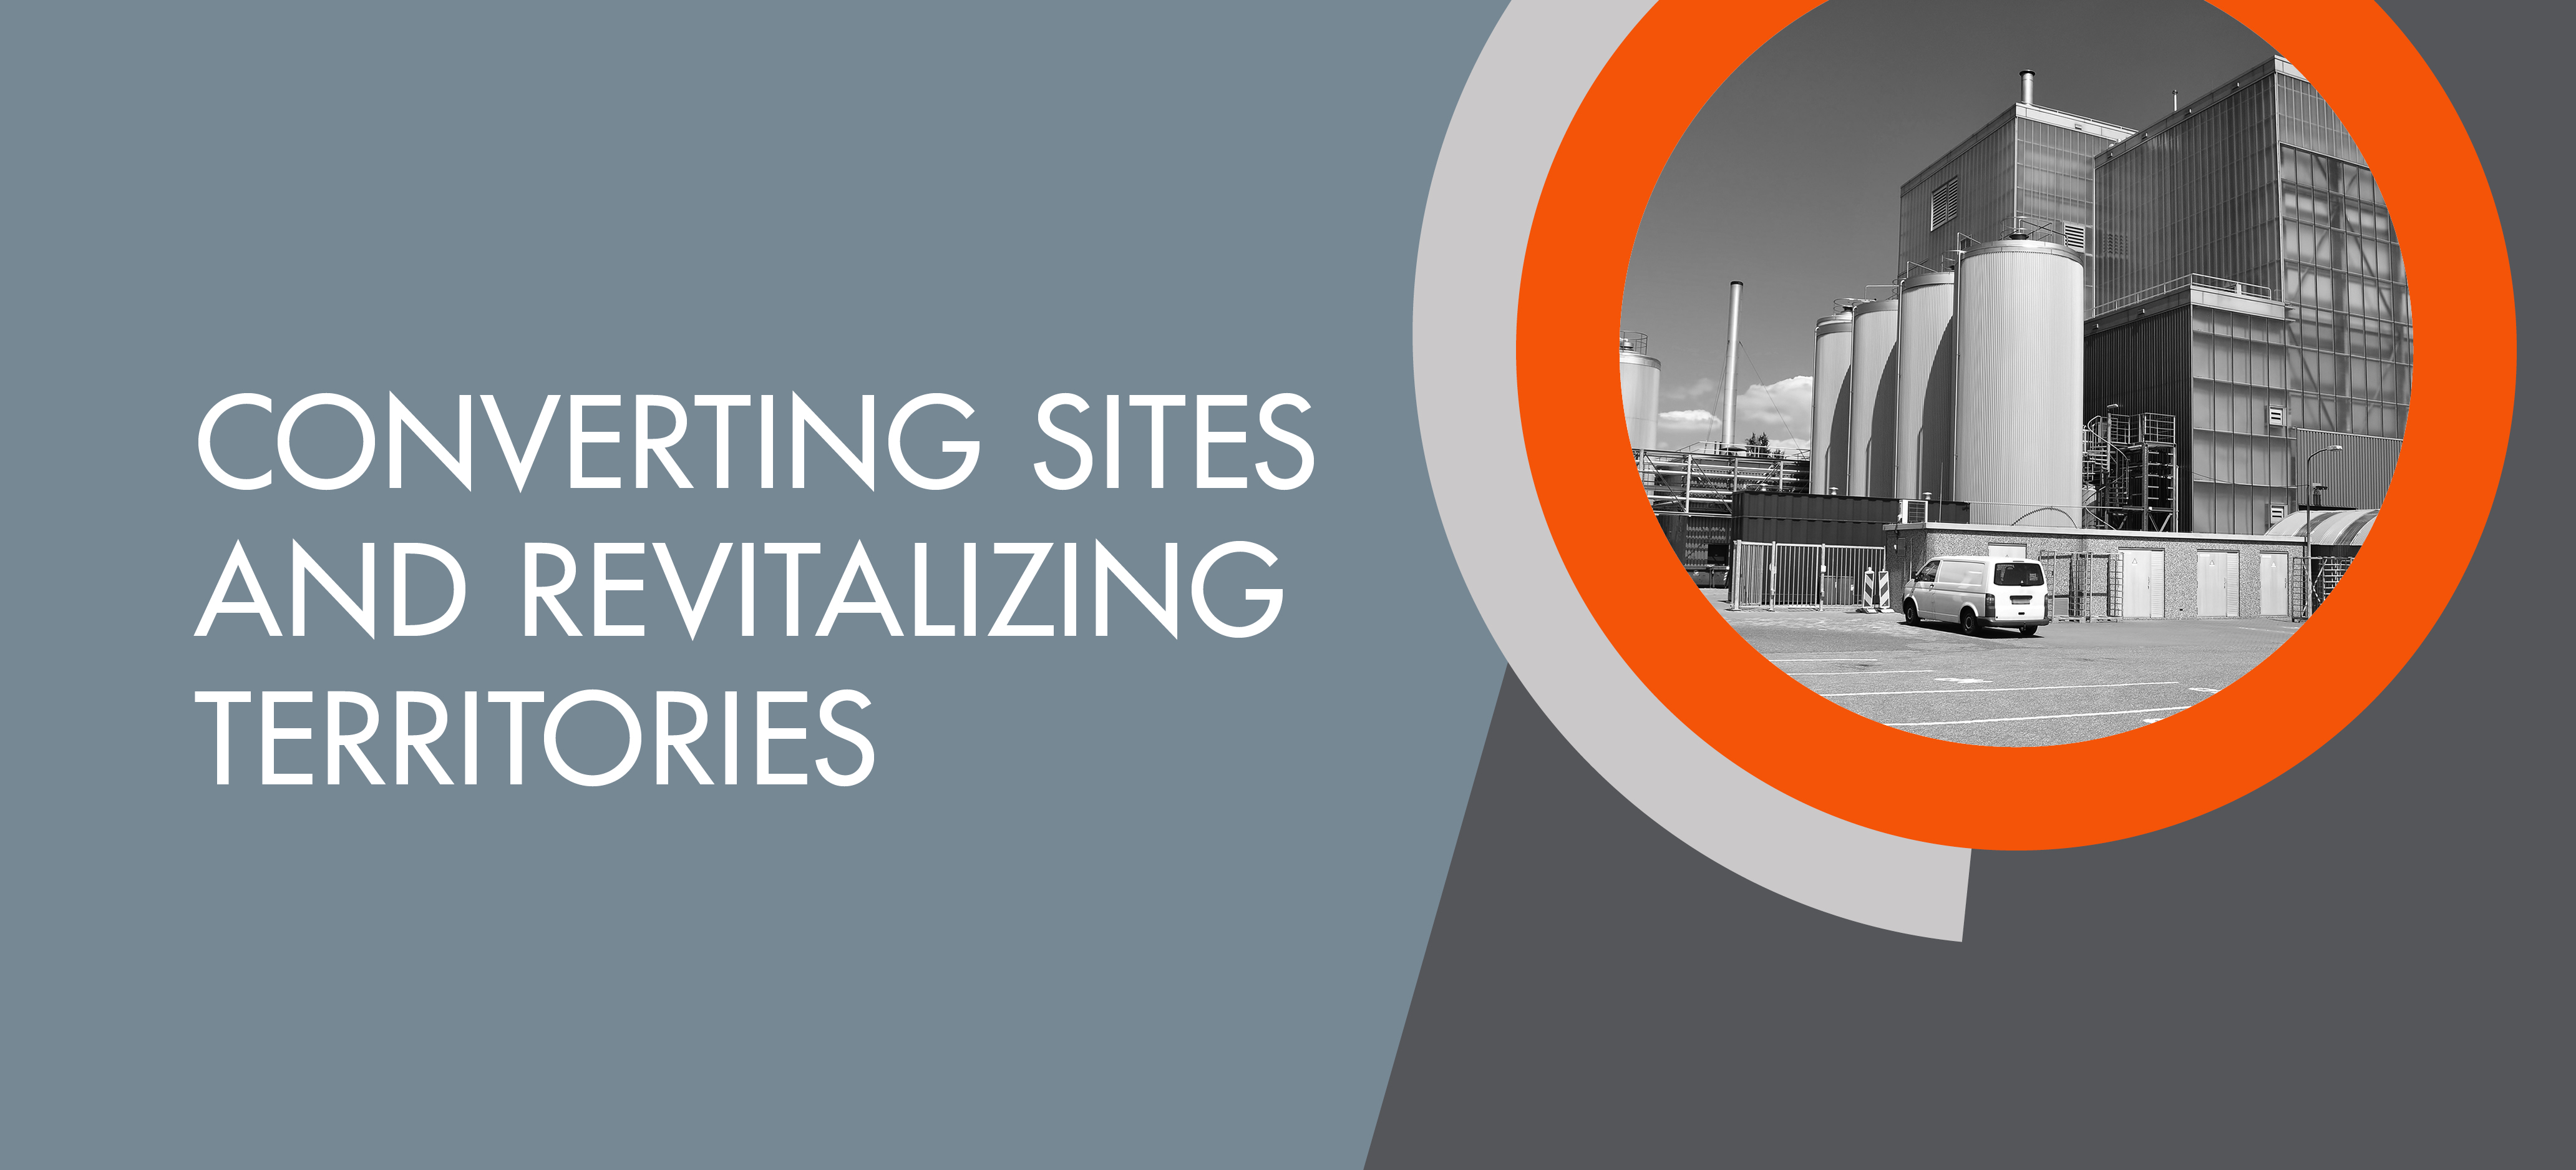 Converting sites and revitalizing territories